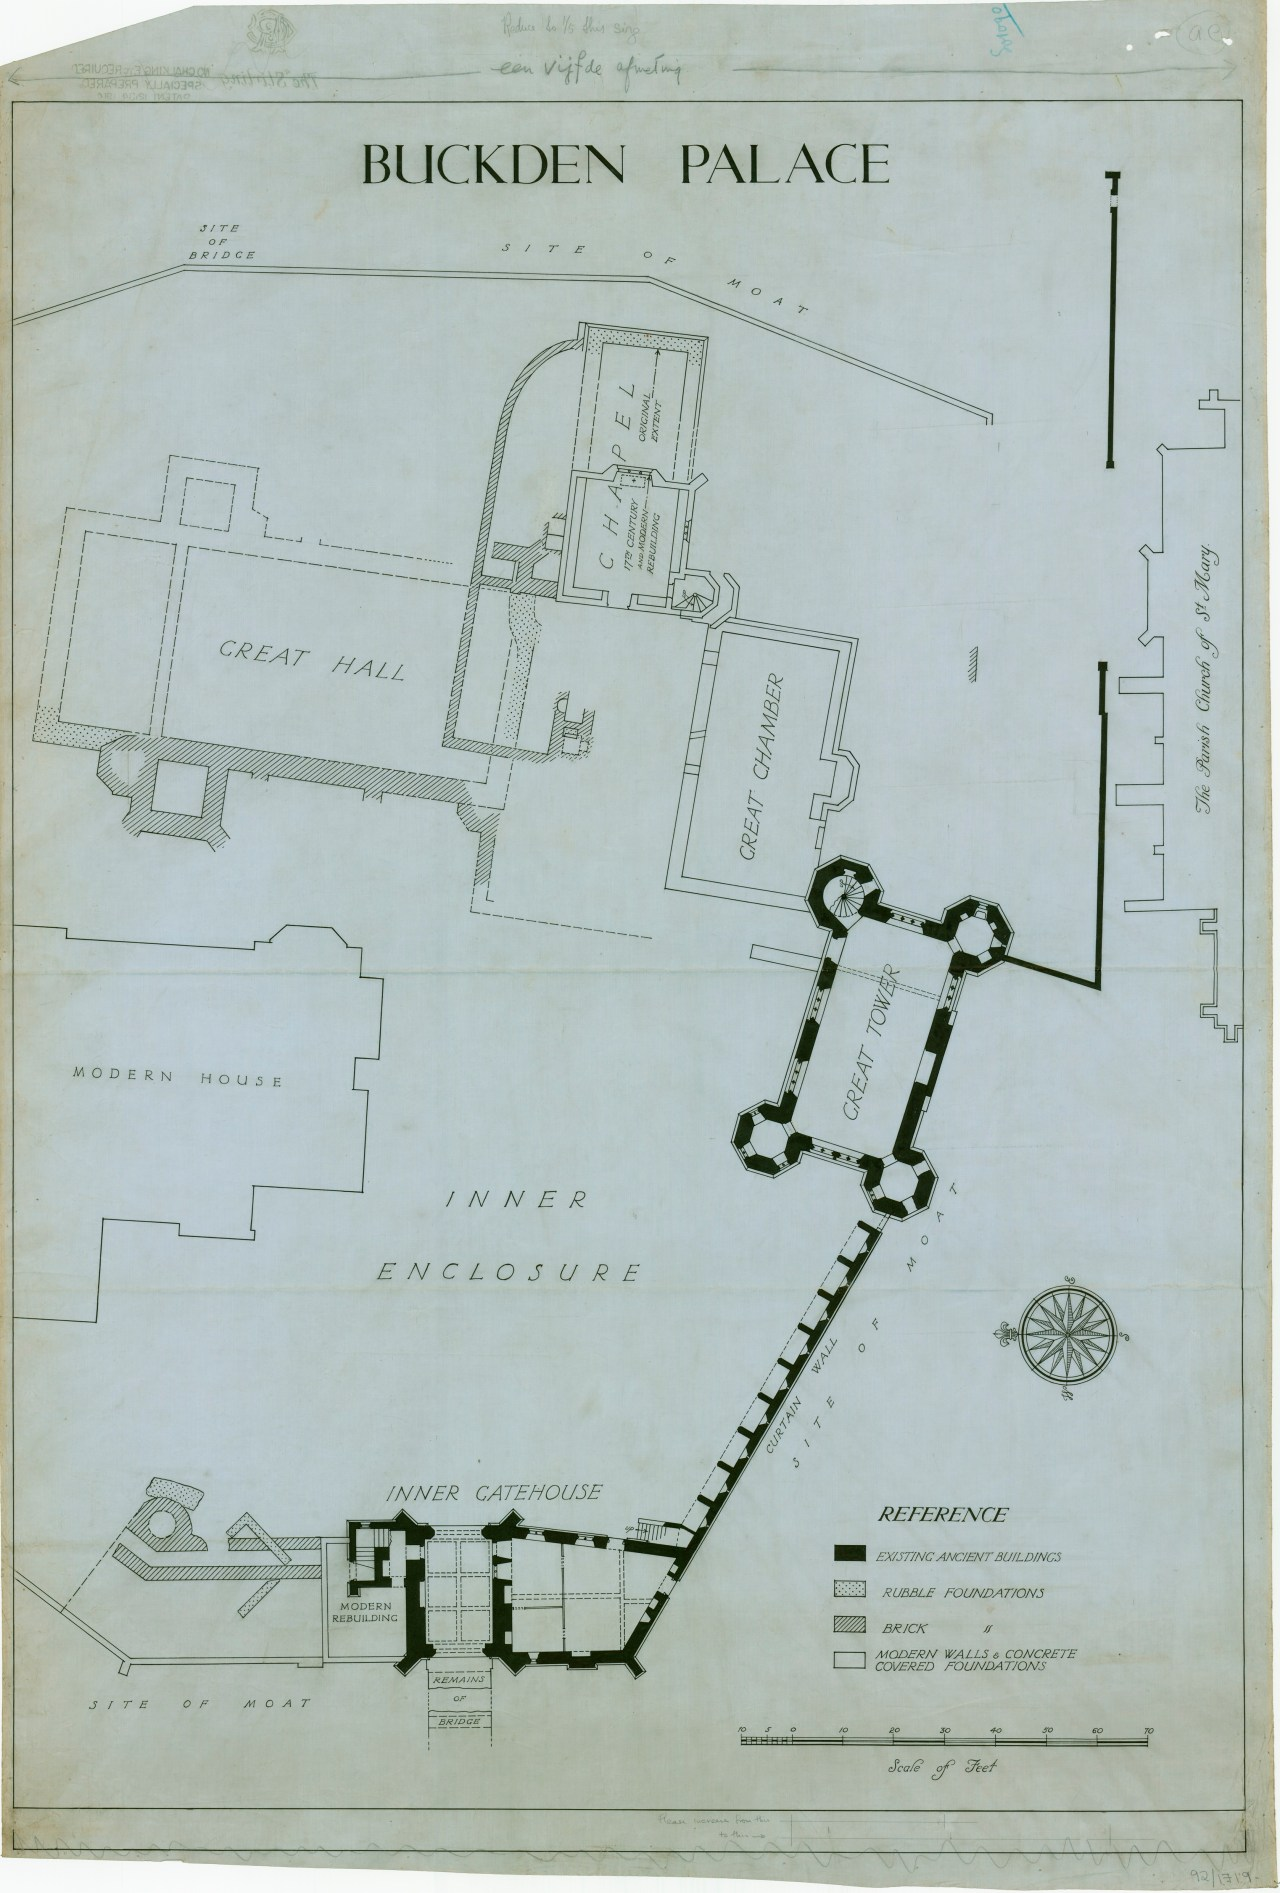 Plan of Buckden Palace during the Tudor Period